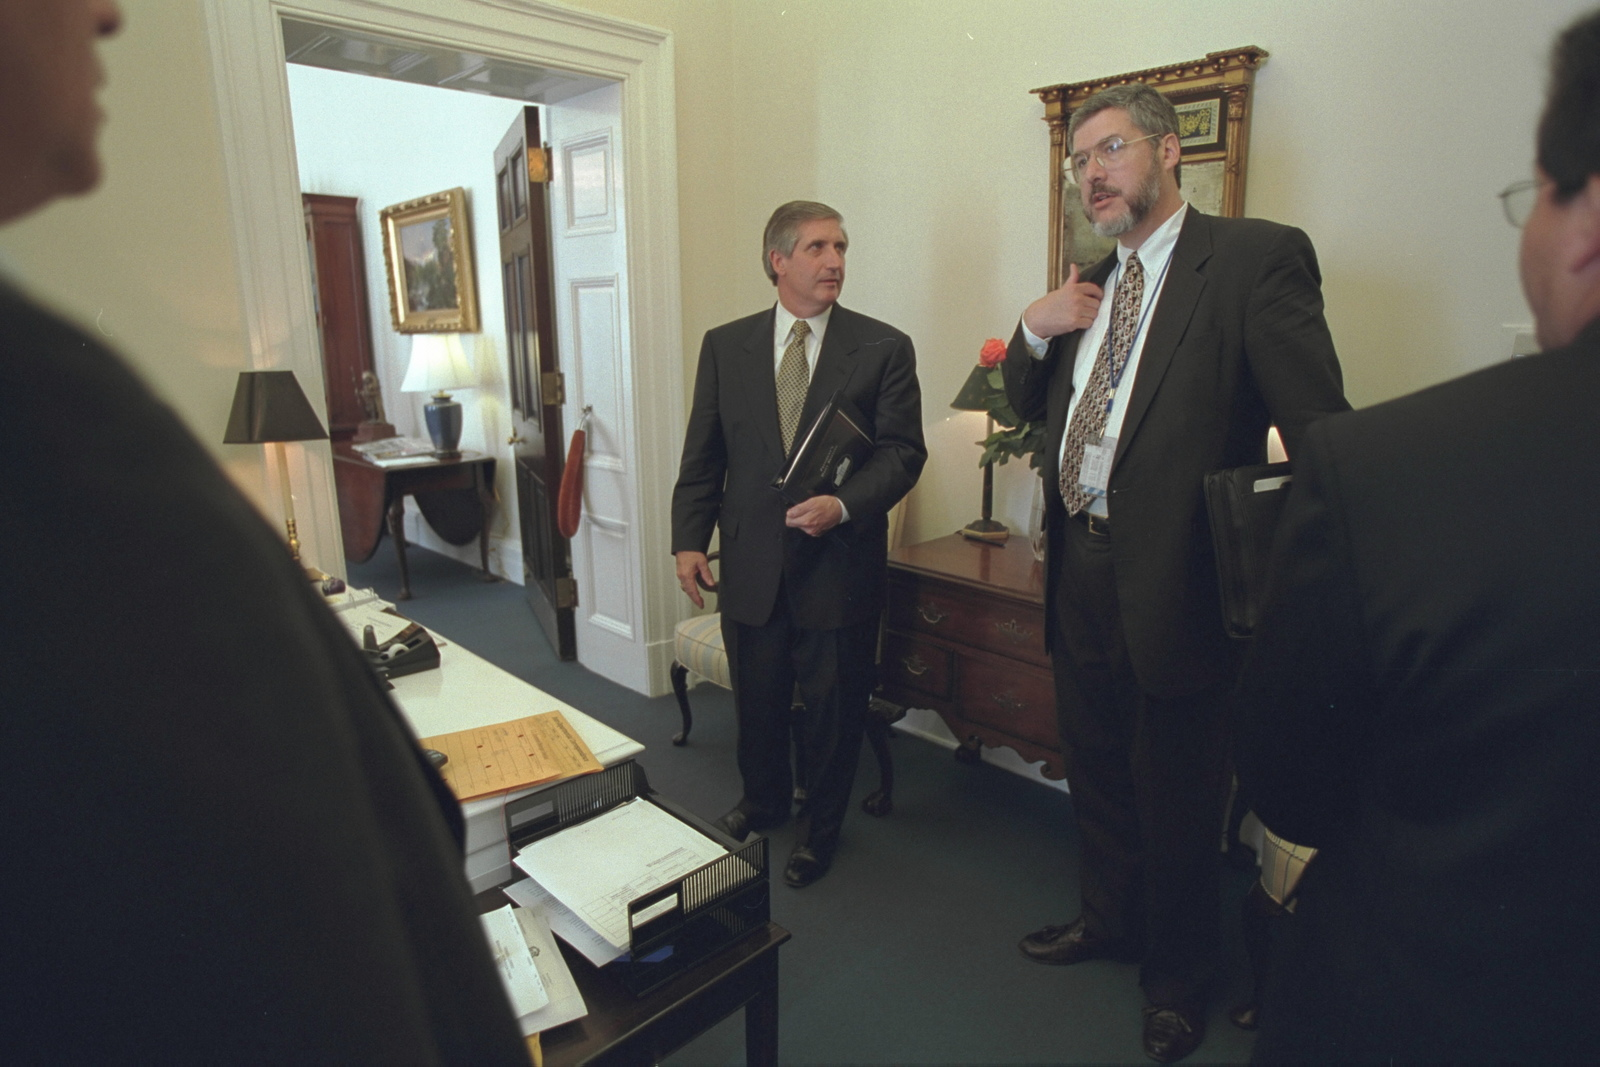 David Addington with Andrew Card